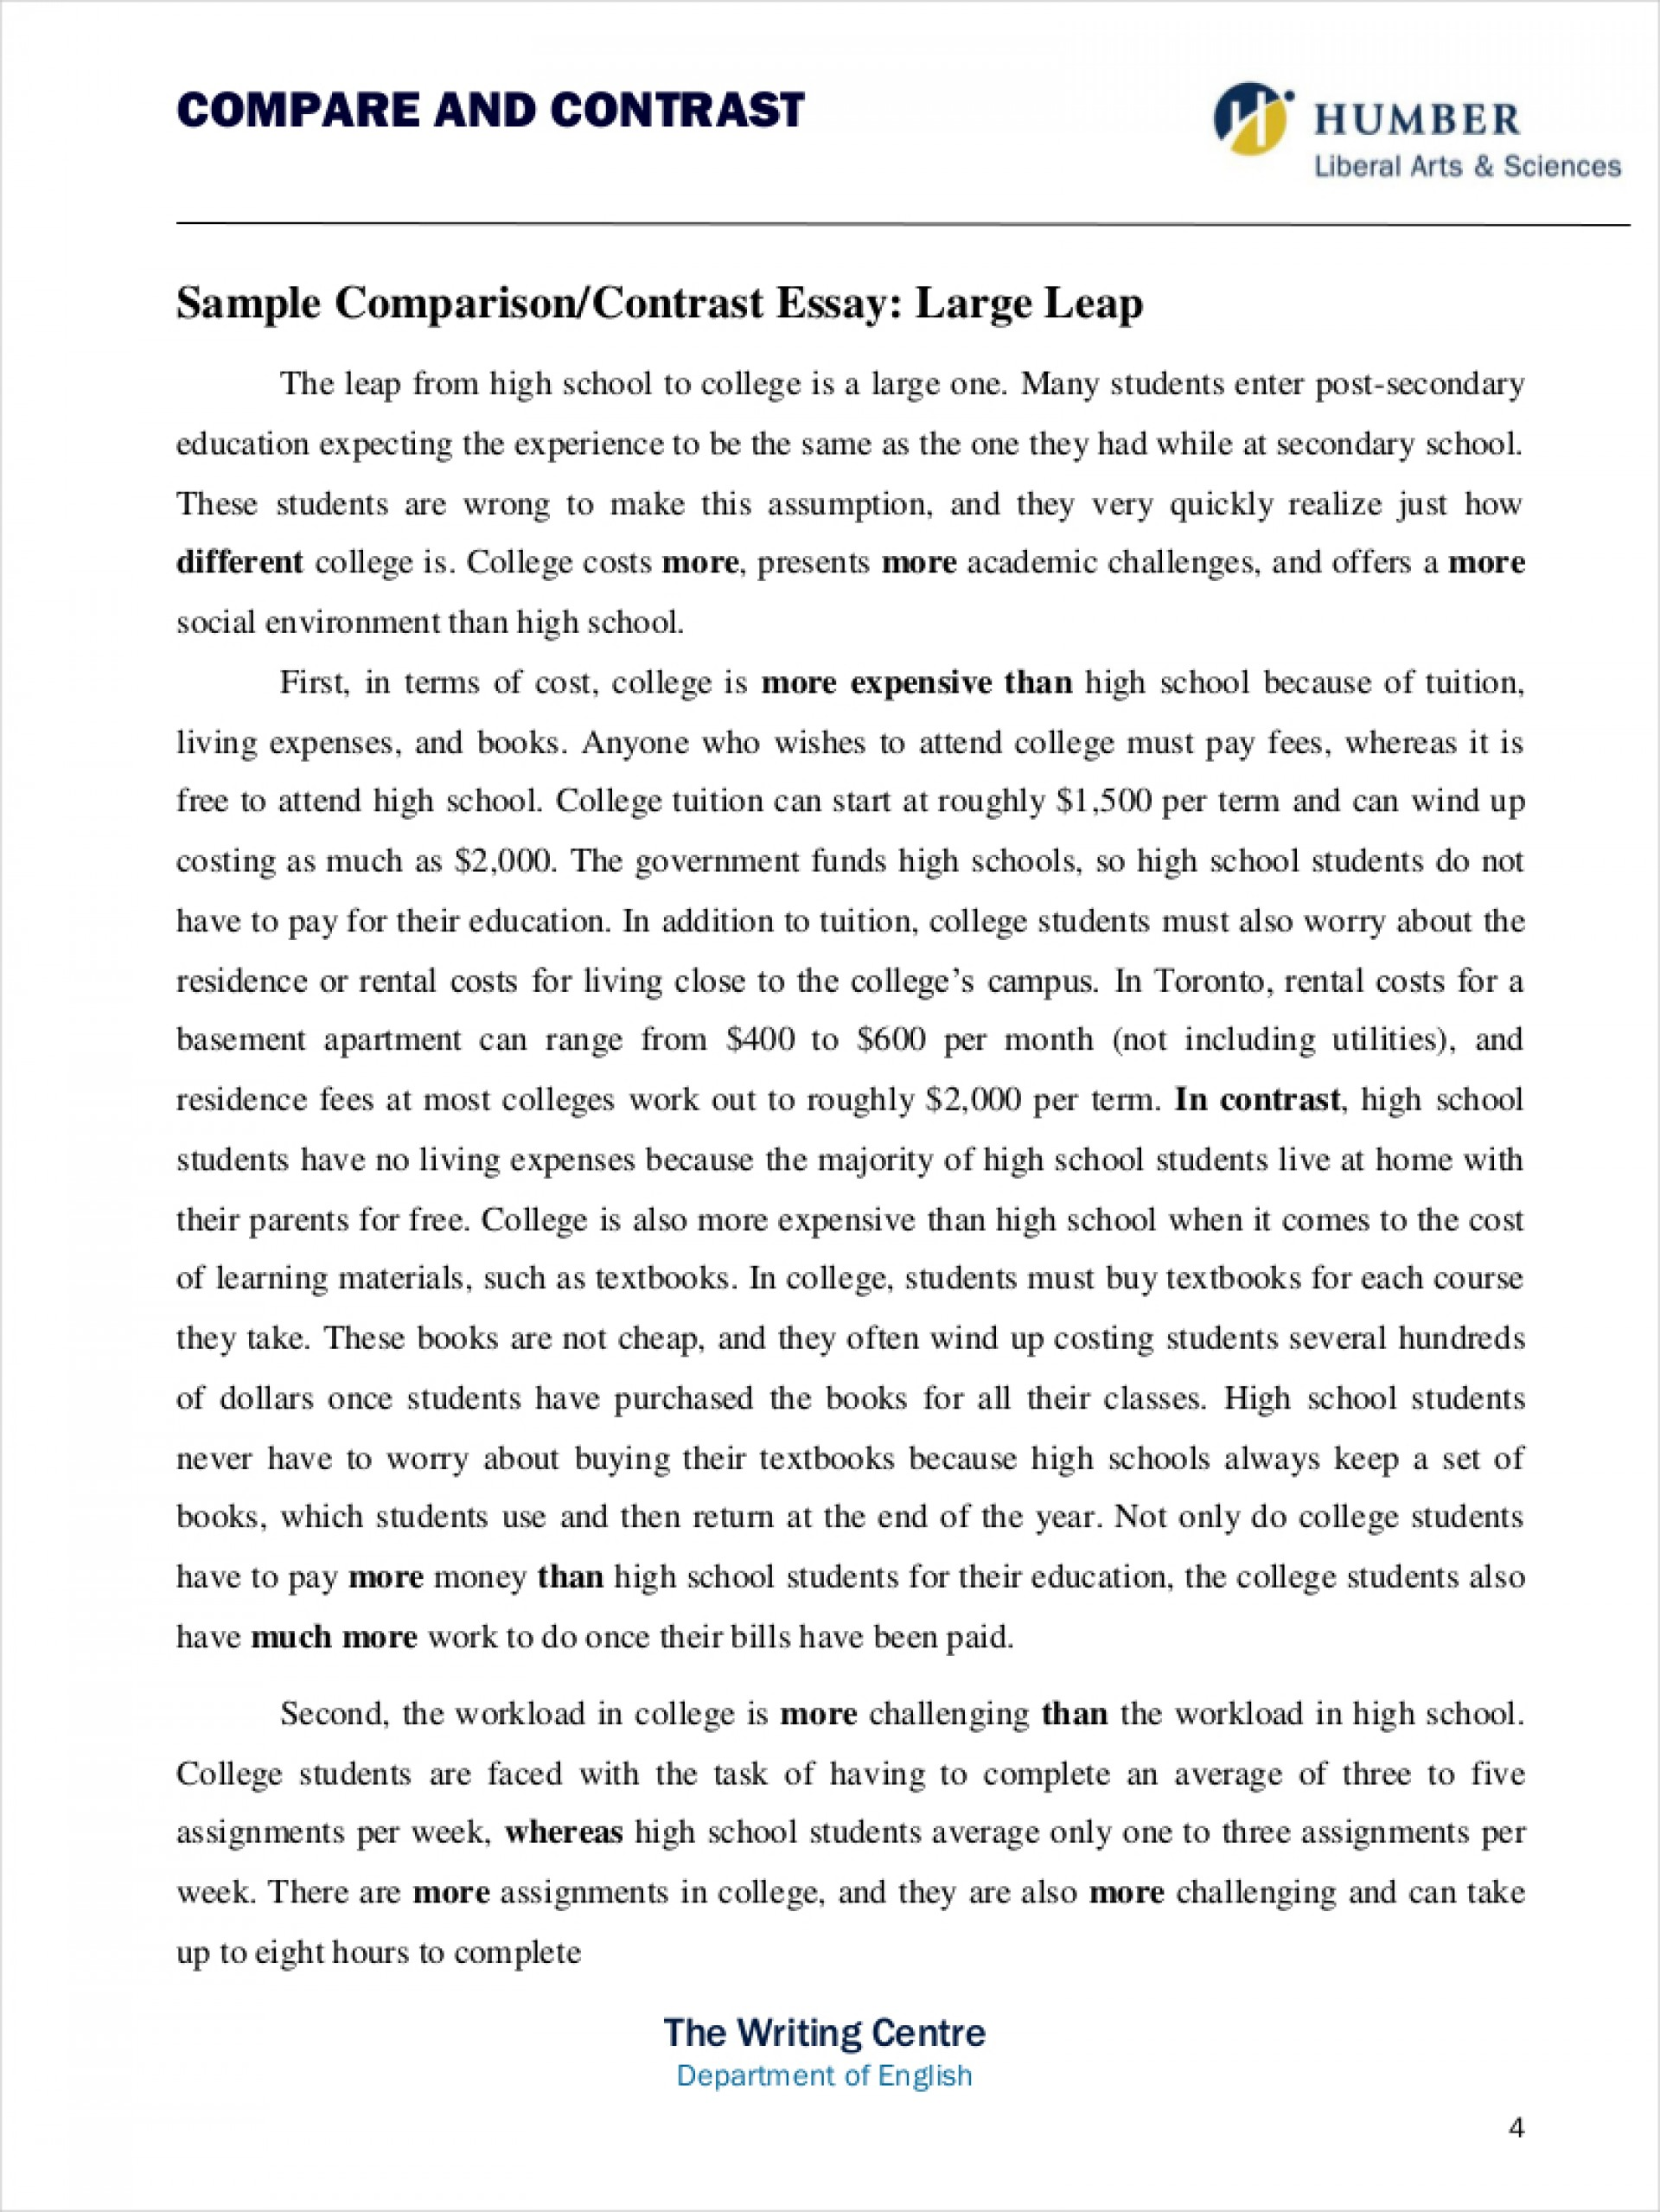 006 Compare And Contrast Essay Examples Comparative Samples Free Pdf Format Download Throughout Comparison Thesis Coles Thecolossus Co Within Ex 5th Grade 4th 6th 3rd Magnificent Elementary 7th College Level 1920